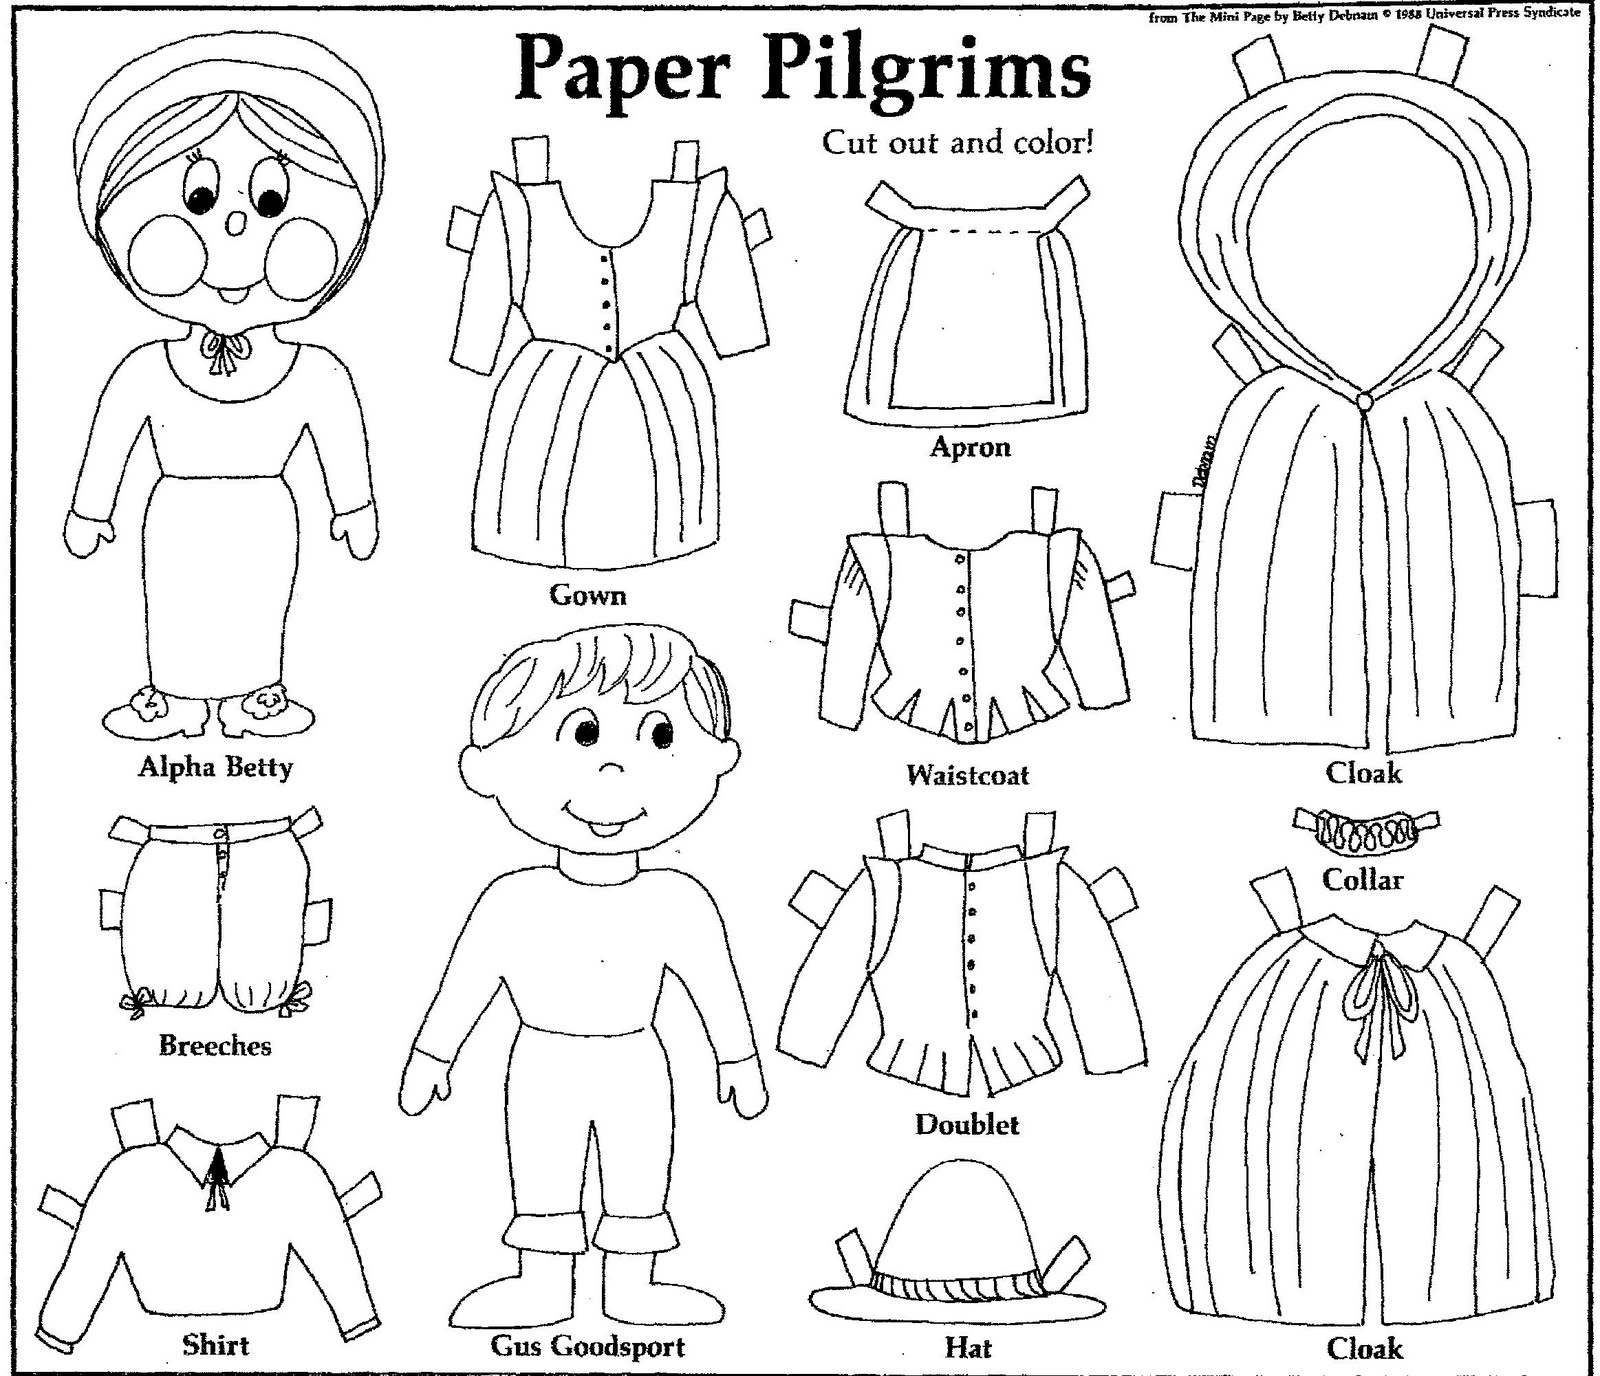 Cut And Color : Mostly Paper Dolls: PAPER PILGRIMS to Cut Out and Color! 1988